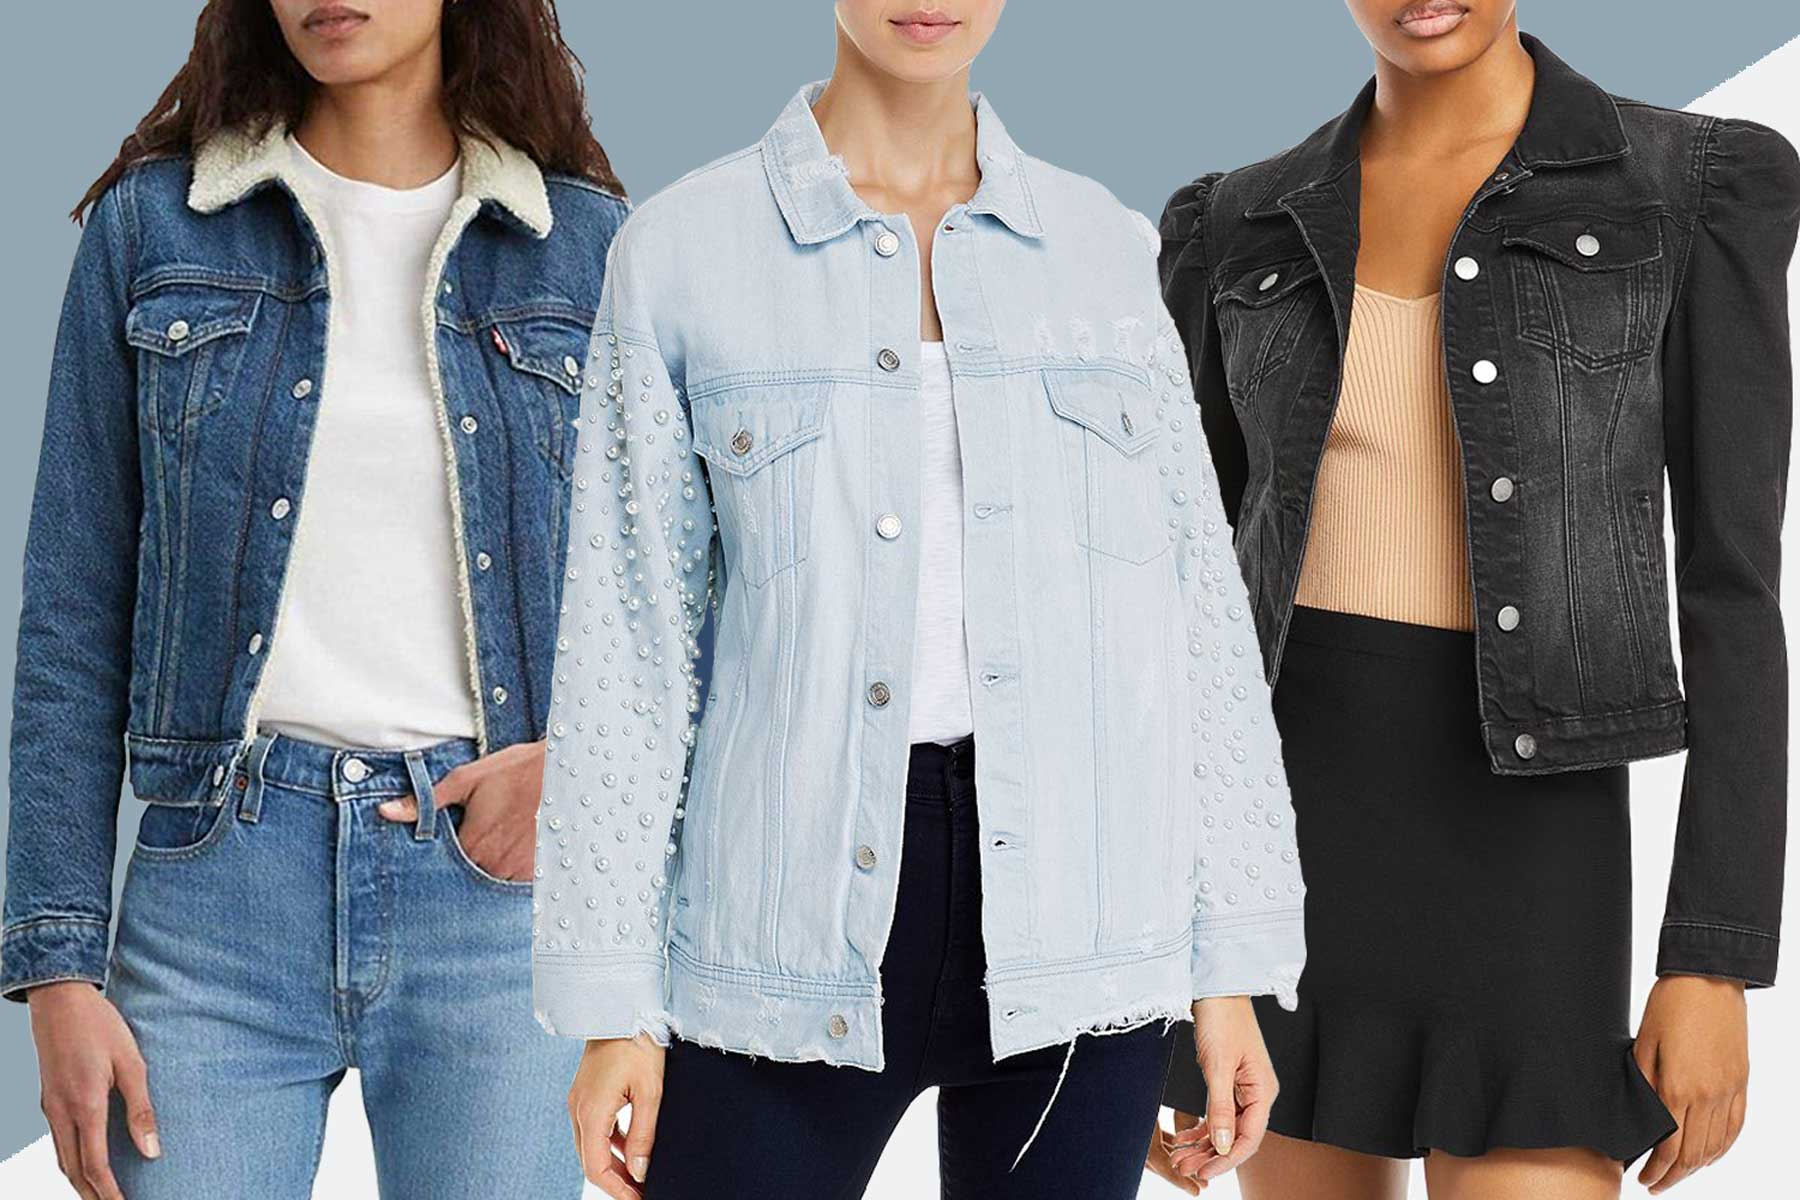 Denim jackets from Amazon and Bloomingdales